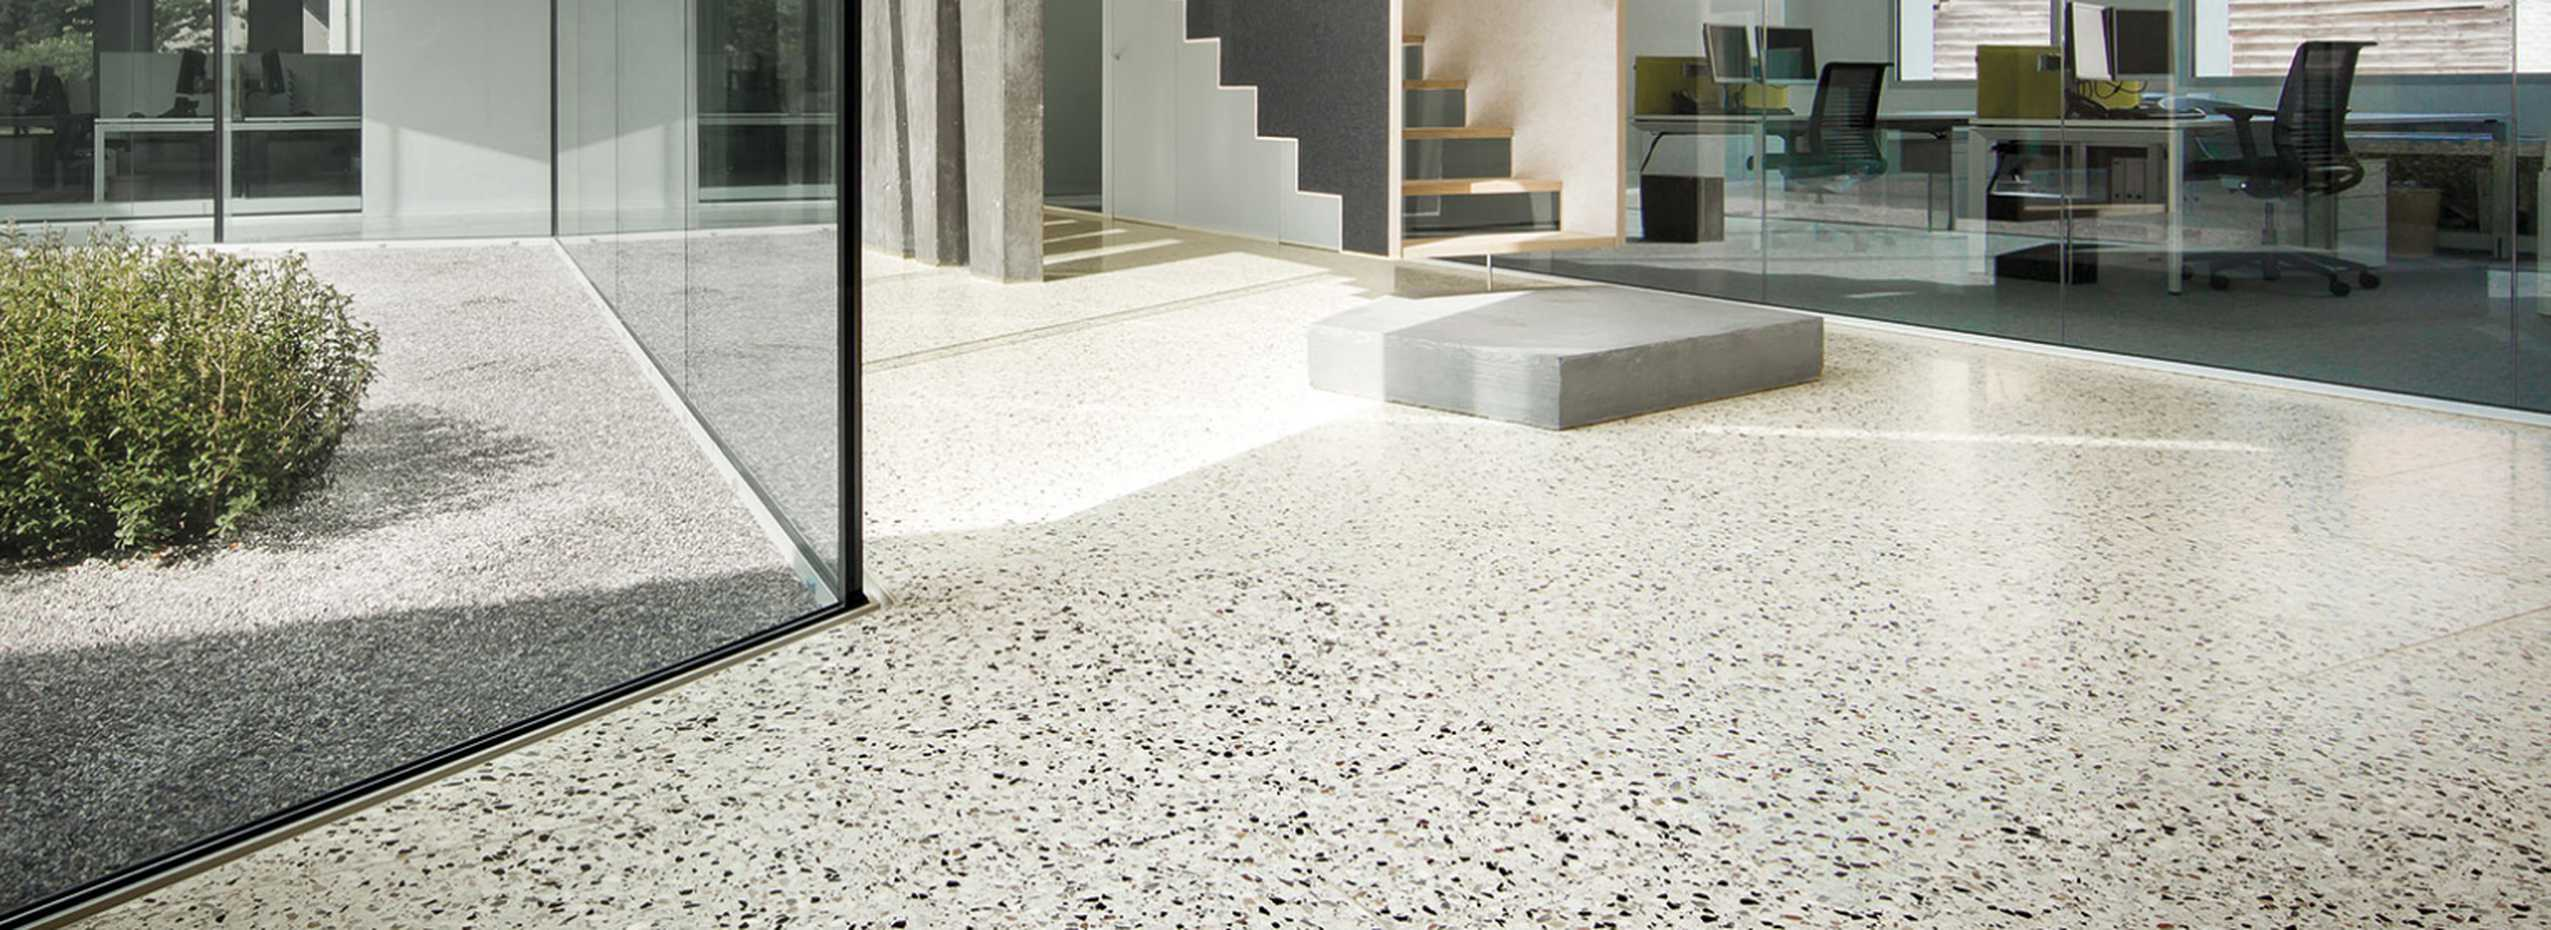 Linea Classico by Agglotech product image 1